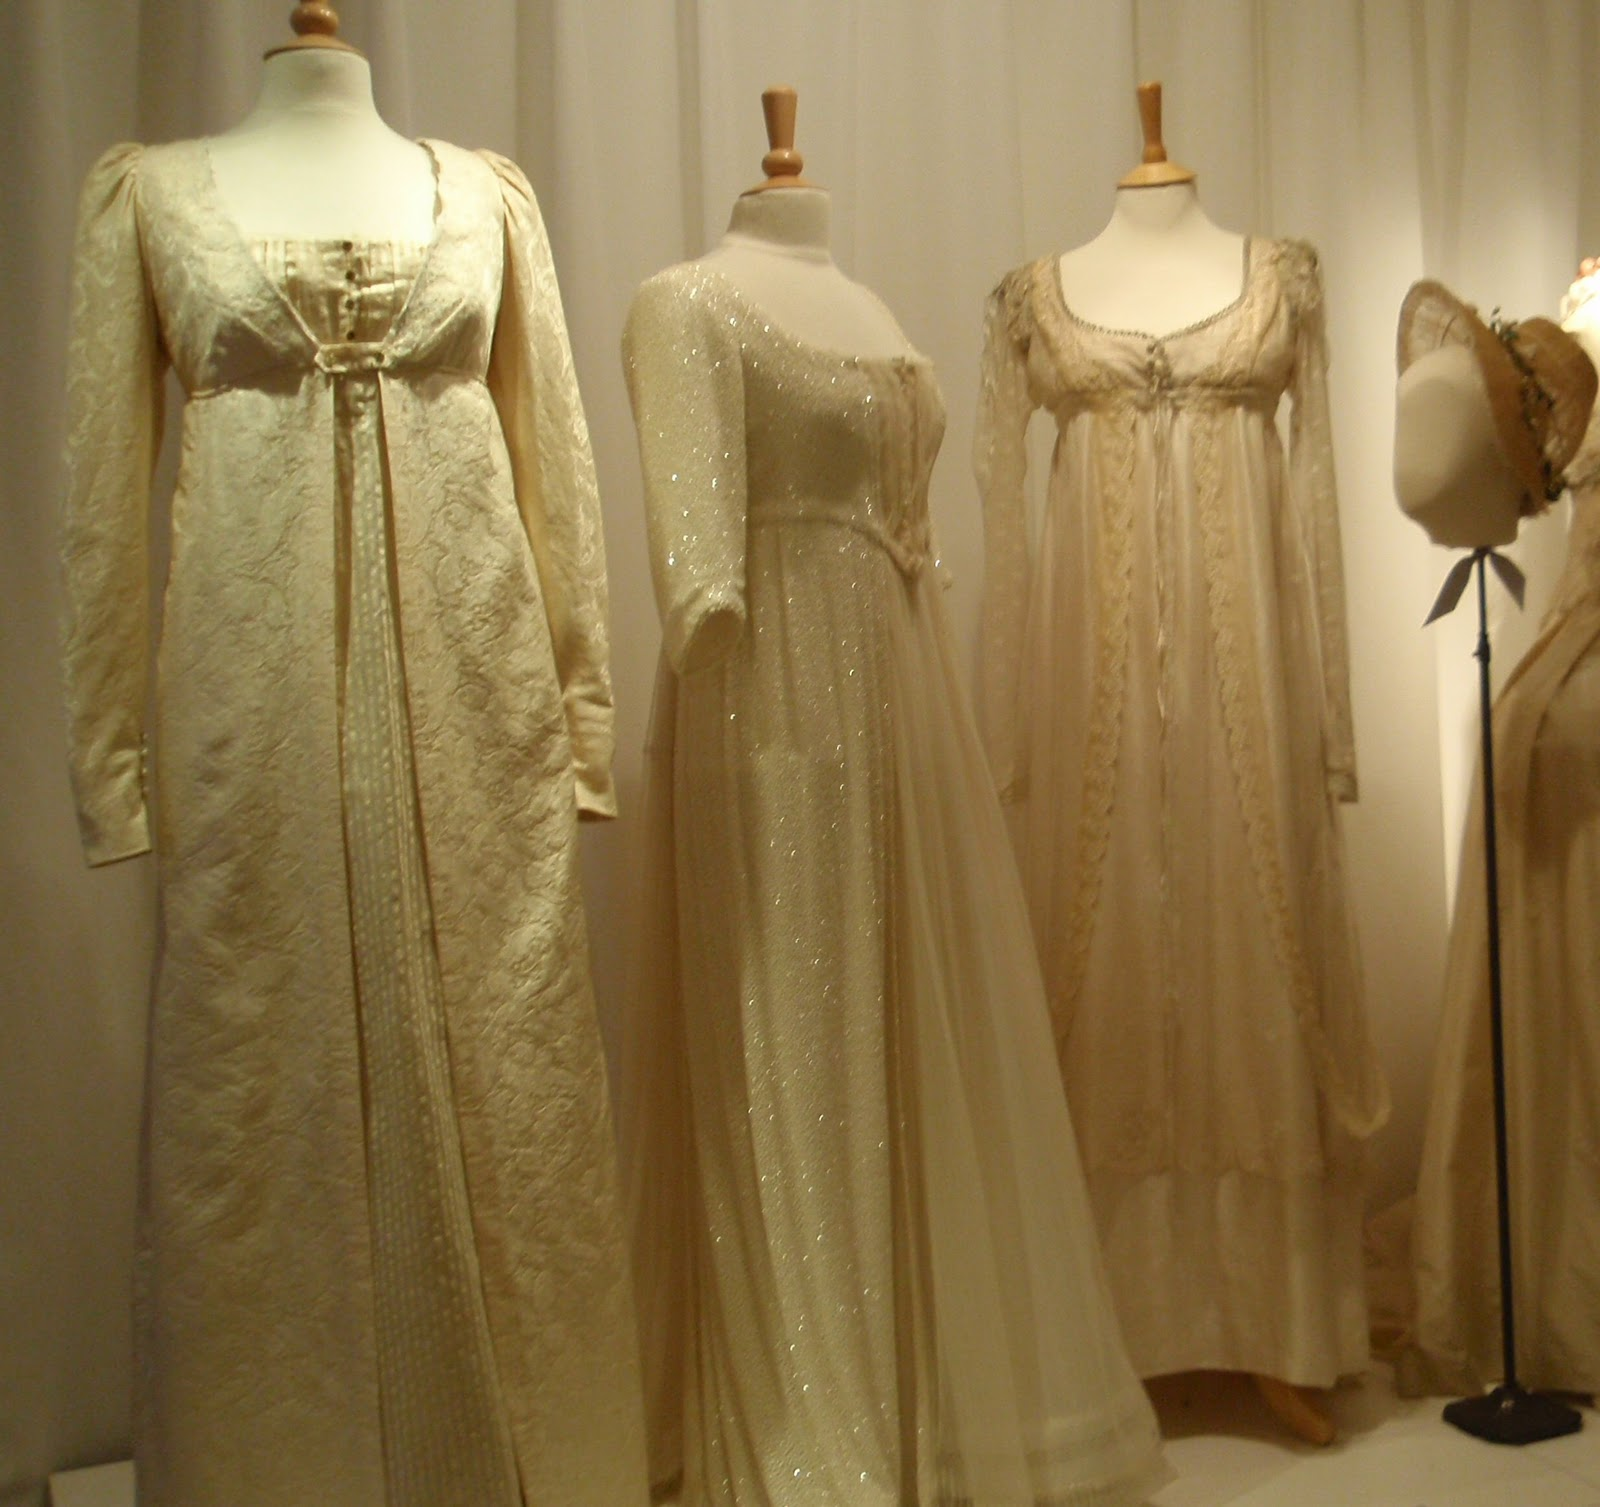 Romancing History: Tea And Corsets At A Costume Museum